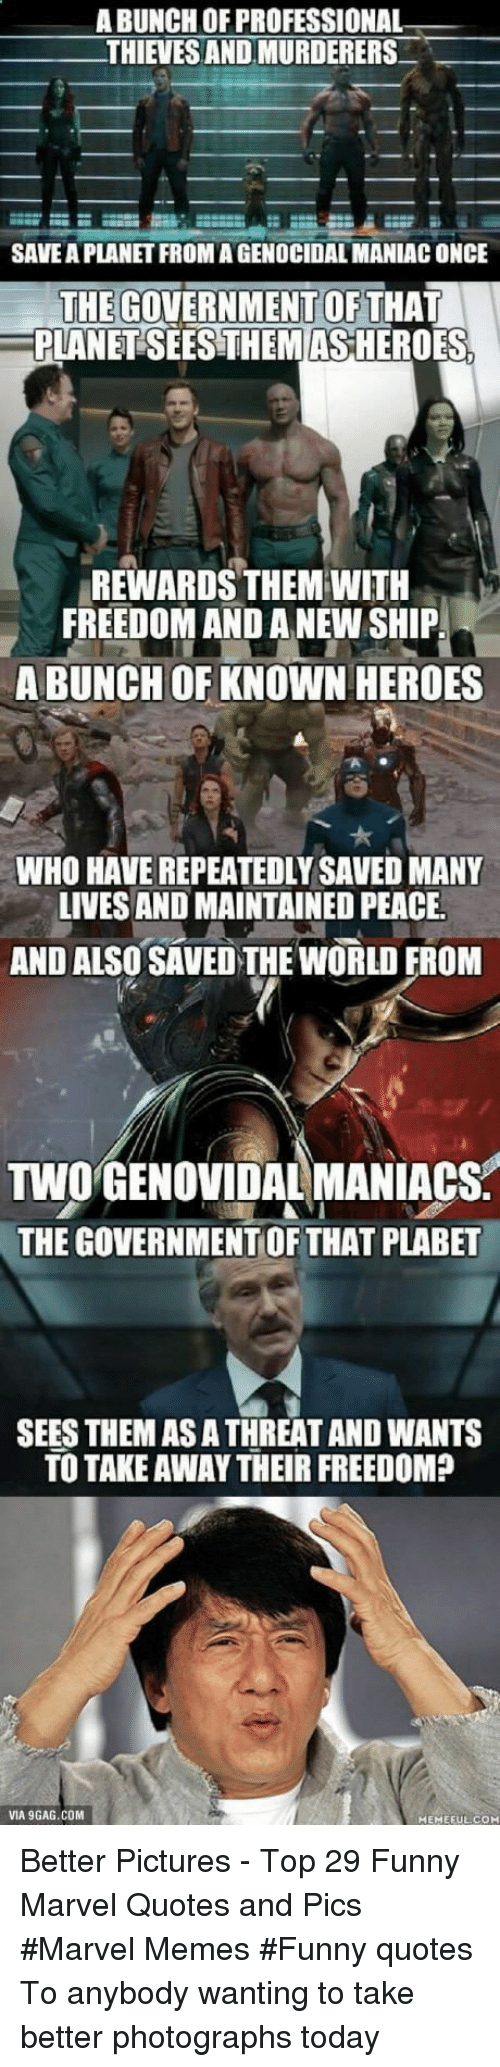 Funny Marvel: A BUNCH OF PROFESSIONAL  THIEVES AND MURDERERS  SAVE A PLANET FROMAGENOCIDAL MANIAC ONCE  THE GOVERNMENTOFTHAT  PLANET SEES THEMAS HEROES  REWARDS THEM WITH  FREEDOM AND A NEW SHIP  A BUNCH OF KNOWN HEROES  WHO HAVE REPEATEDLY SAVED MANY  LIVES AND MAINTAINED PEACE  AND ALSO SAVED THE WORLD FROM  TWO'GENOVIDAL MANIACS  THE GOVERNMENT OF THAT PLABET  SEES THEM AS A THREAT AND WANTS  TO TAKE AWAY THEIR FREEDOM?  VIA 9GAG.COM  MEMEFUL COM Better Pictures - Top 29 Funny Marvel Quotes and Pics #Marvel Memes #Funny quotes To anybody wanting to take better photographs today